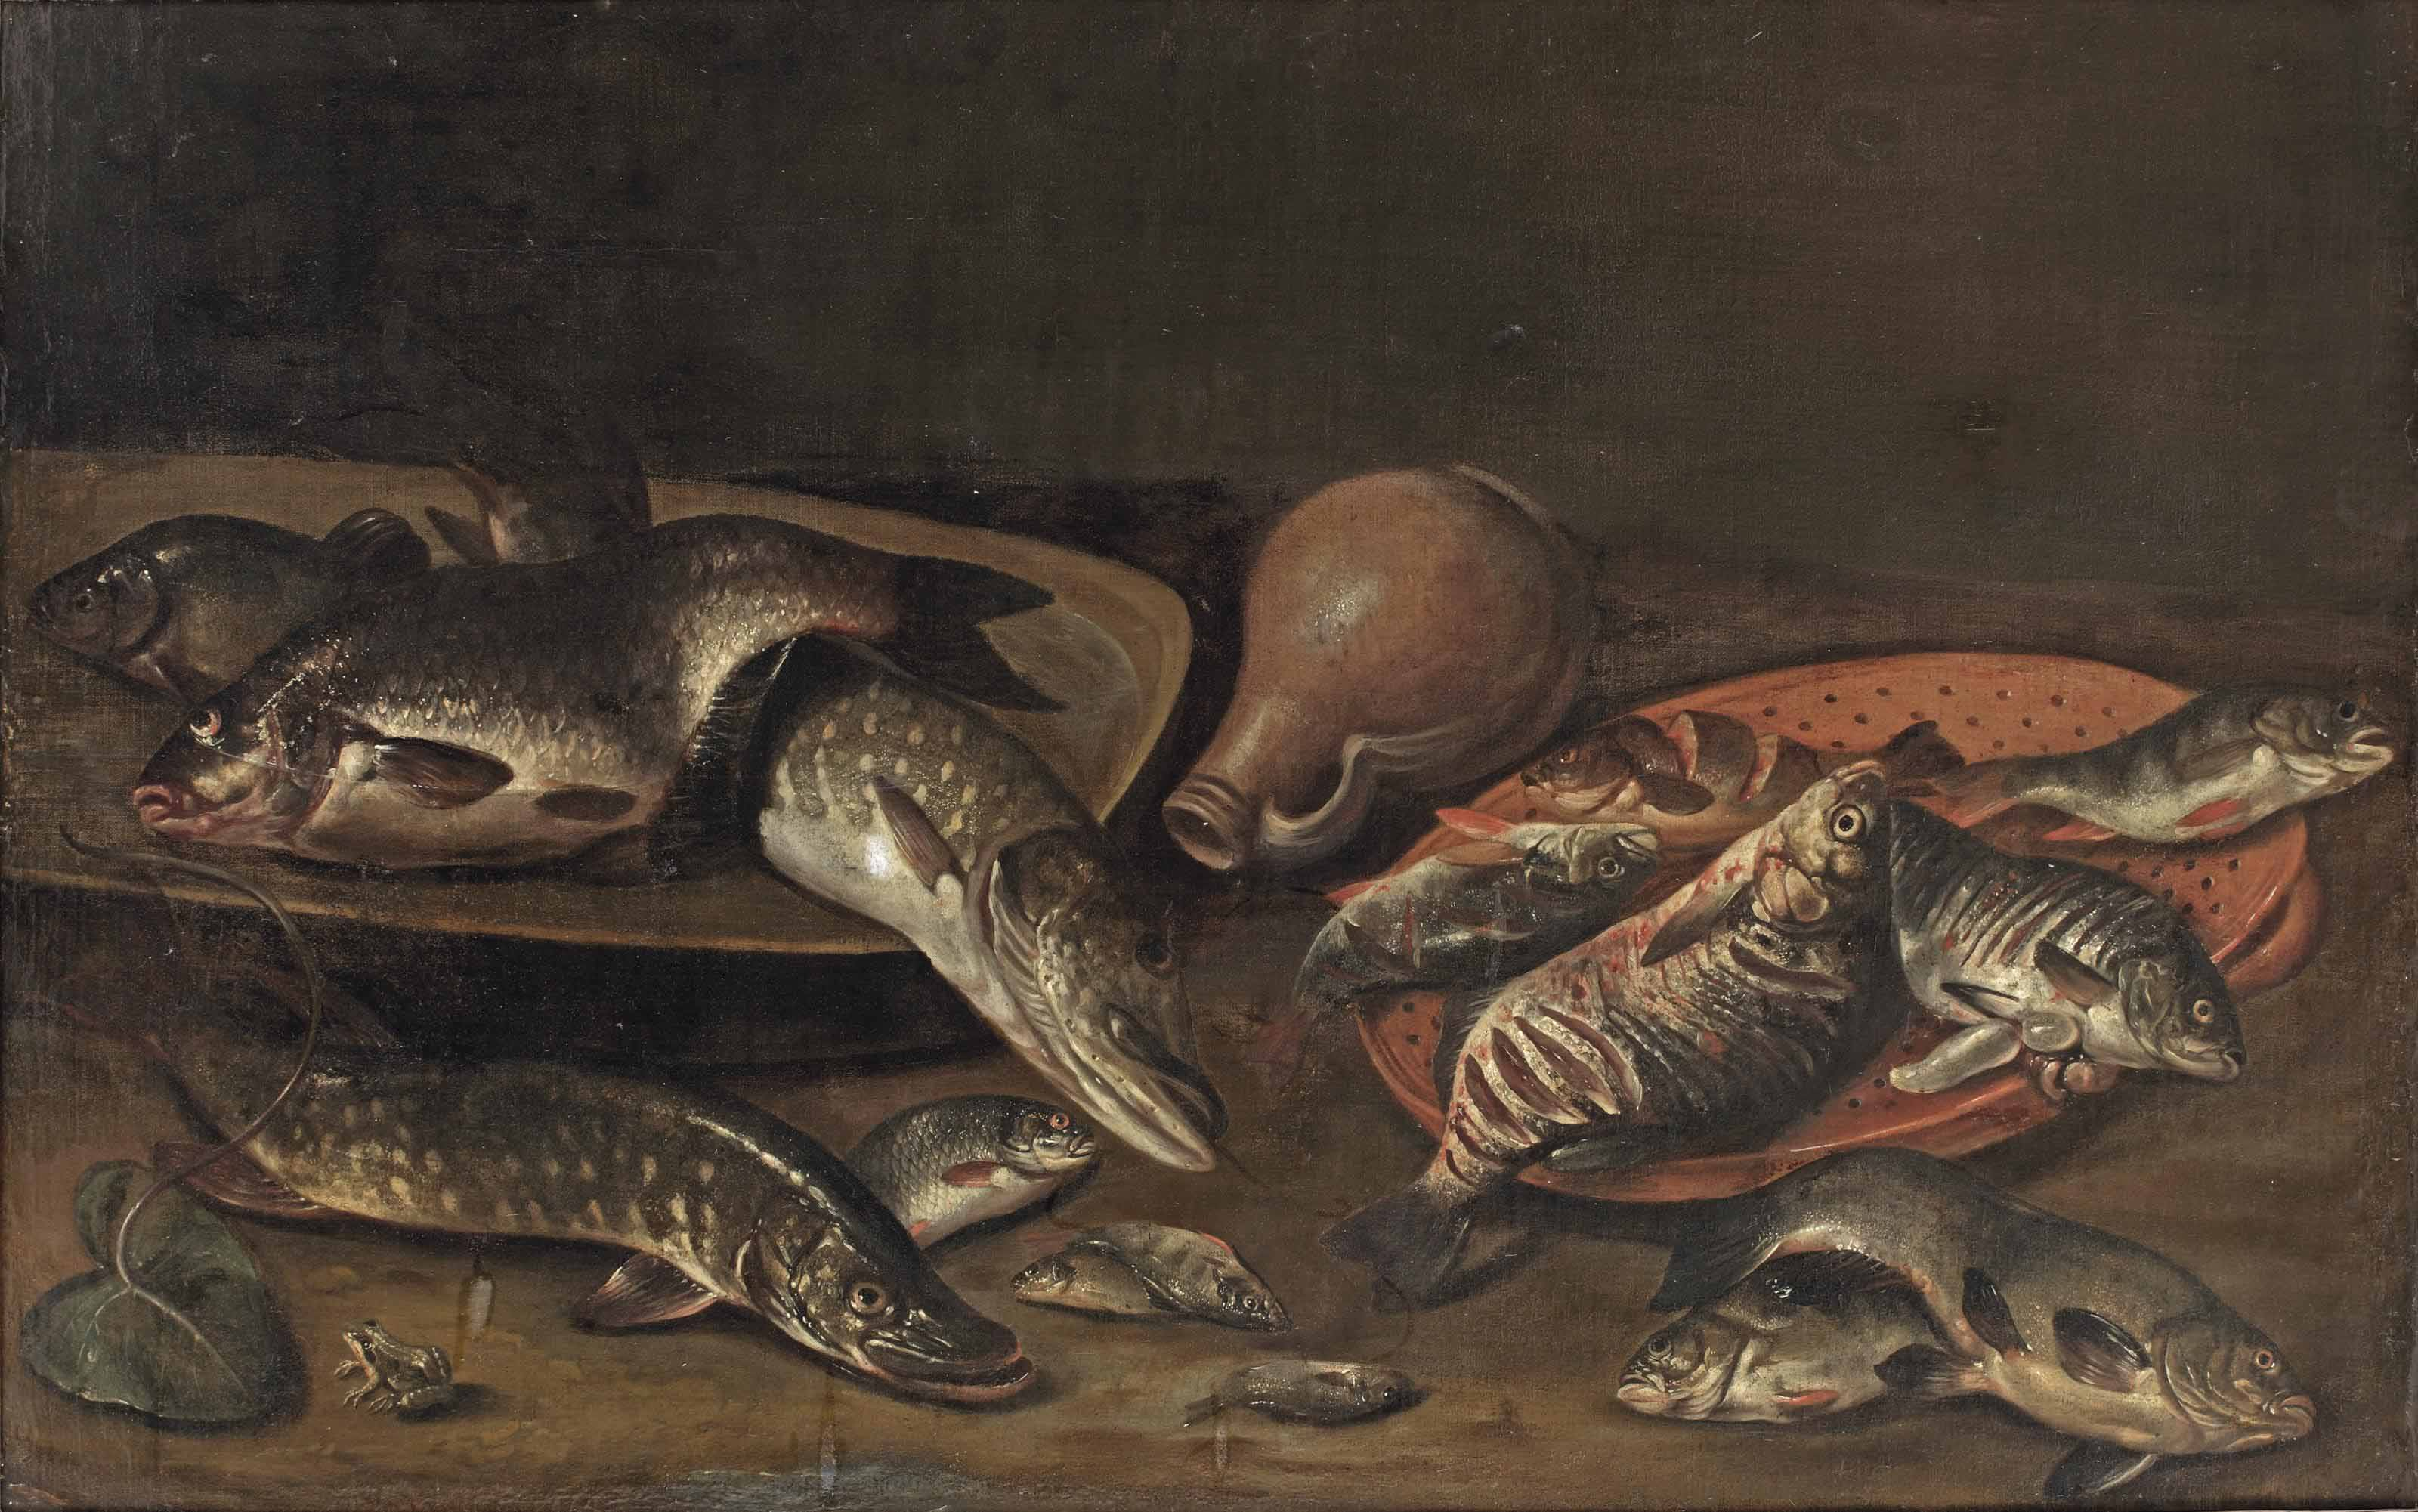 https://www.christies.com/img/LotImages/2014/AMS/2014_AMS_03047_0041_000(isaac_van_duynen_various_fish_on_platters_an_earthenware_jug_and_a_sma).jpg